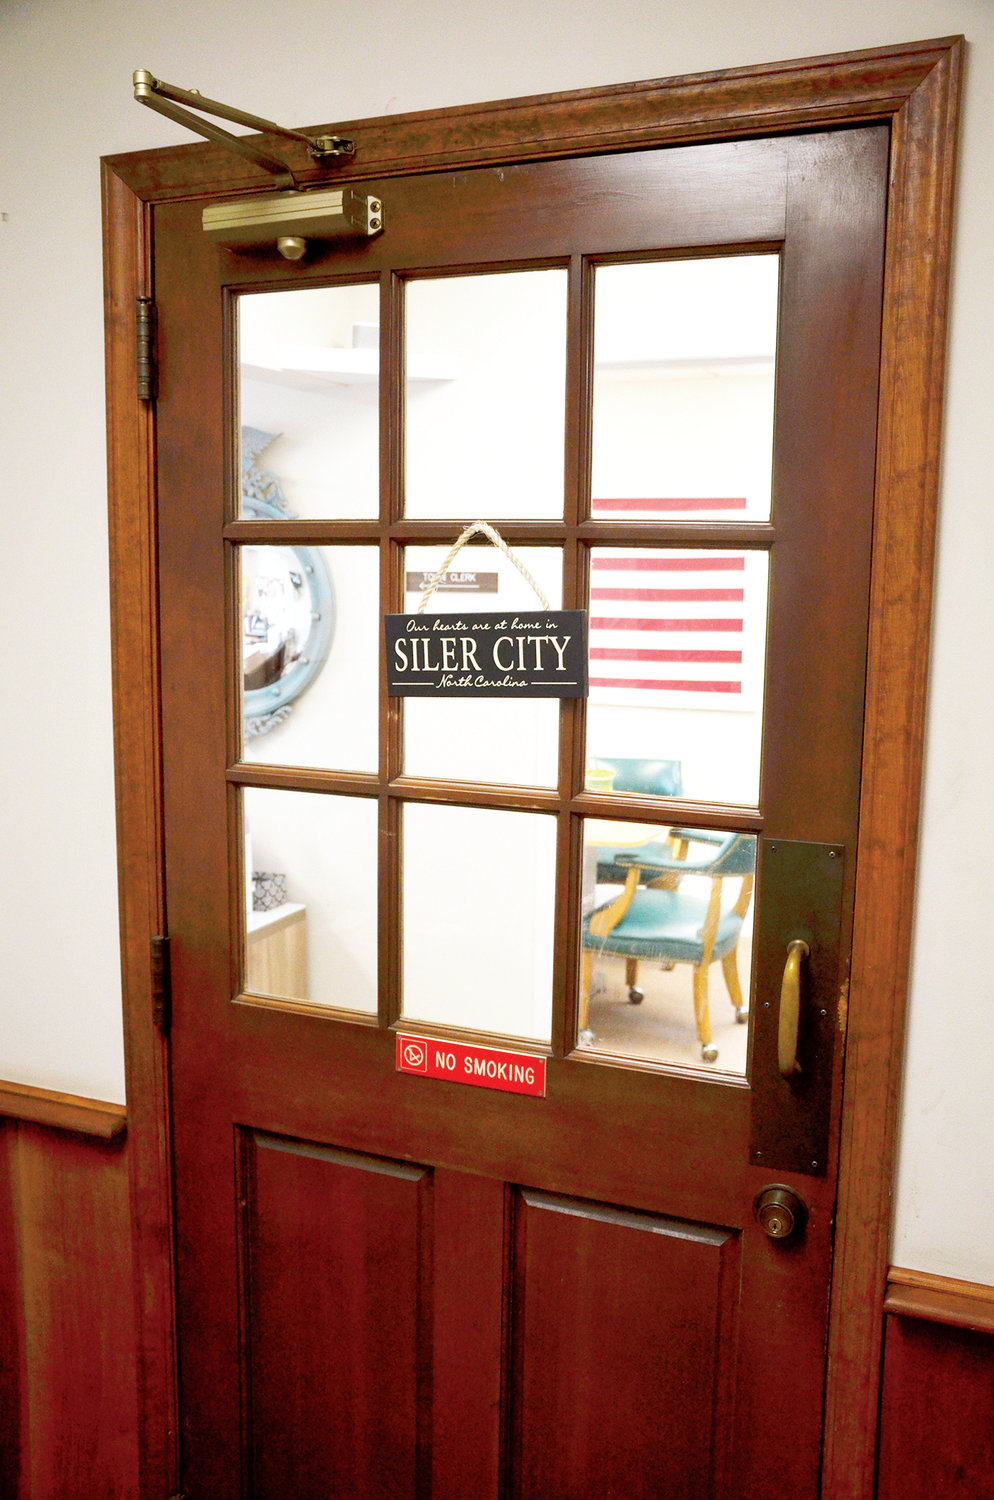 The Town of Siler City currently prohibits smoking inside town-owned property, as shown on this door to town offices.